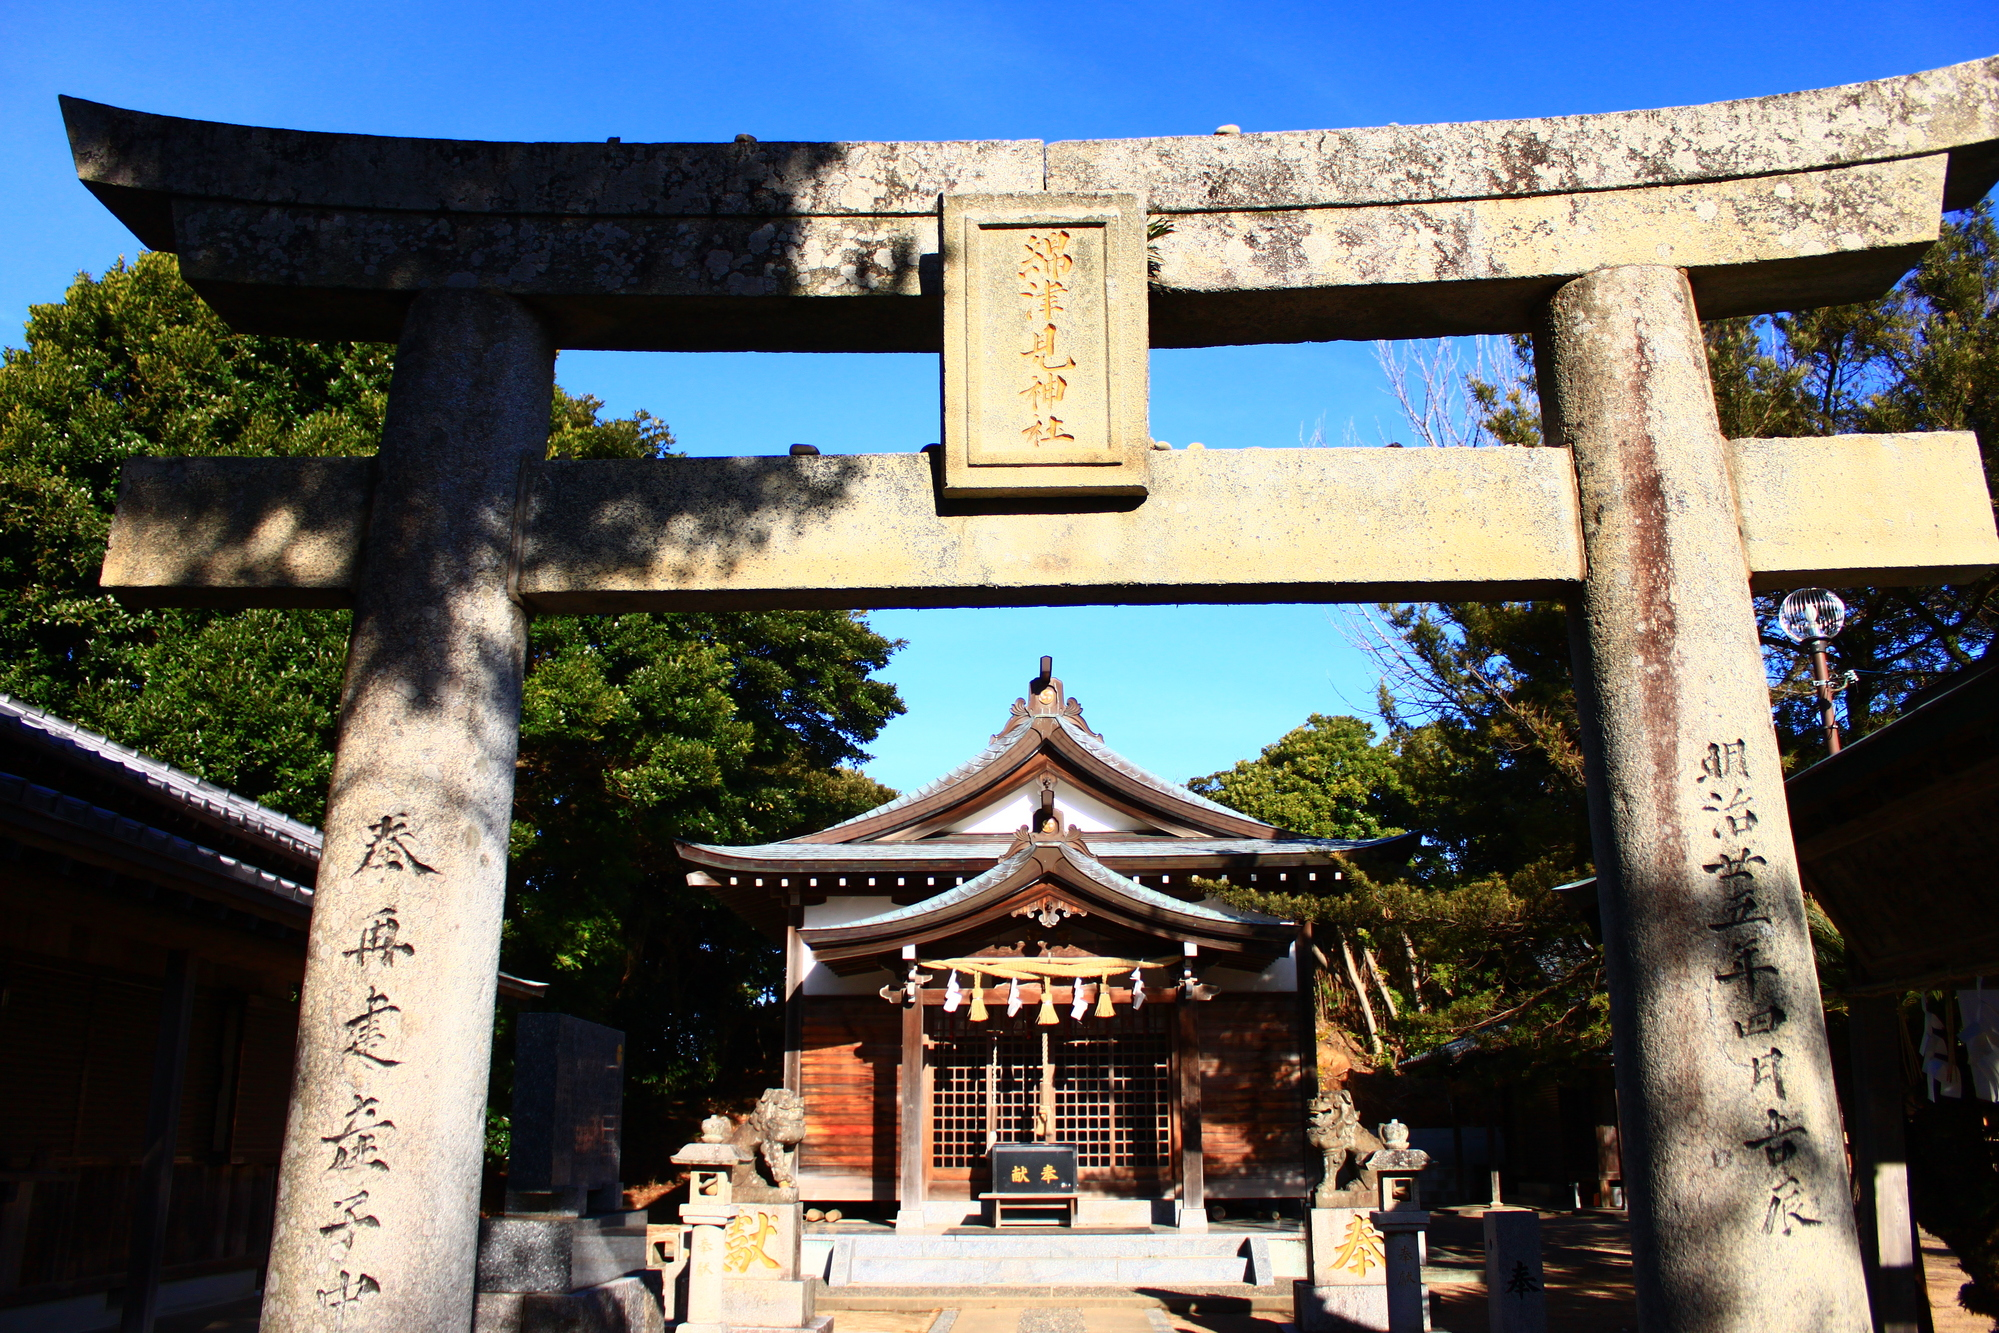 Watazumi-jinja Shrine, where a legend of Ryugu has been told since old times.